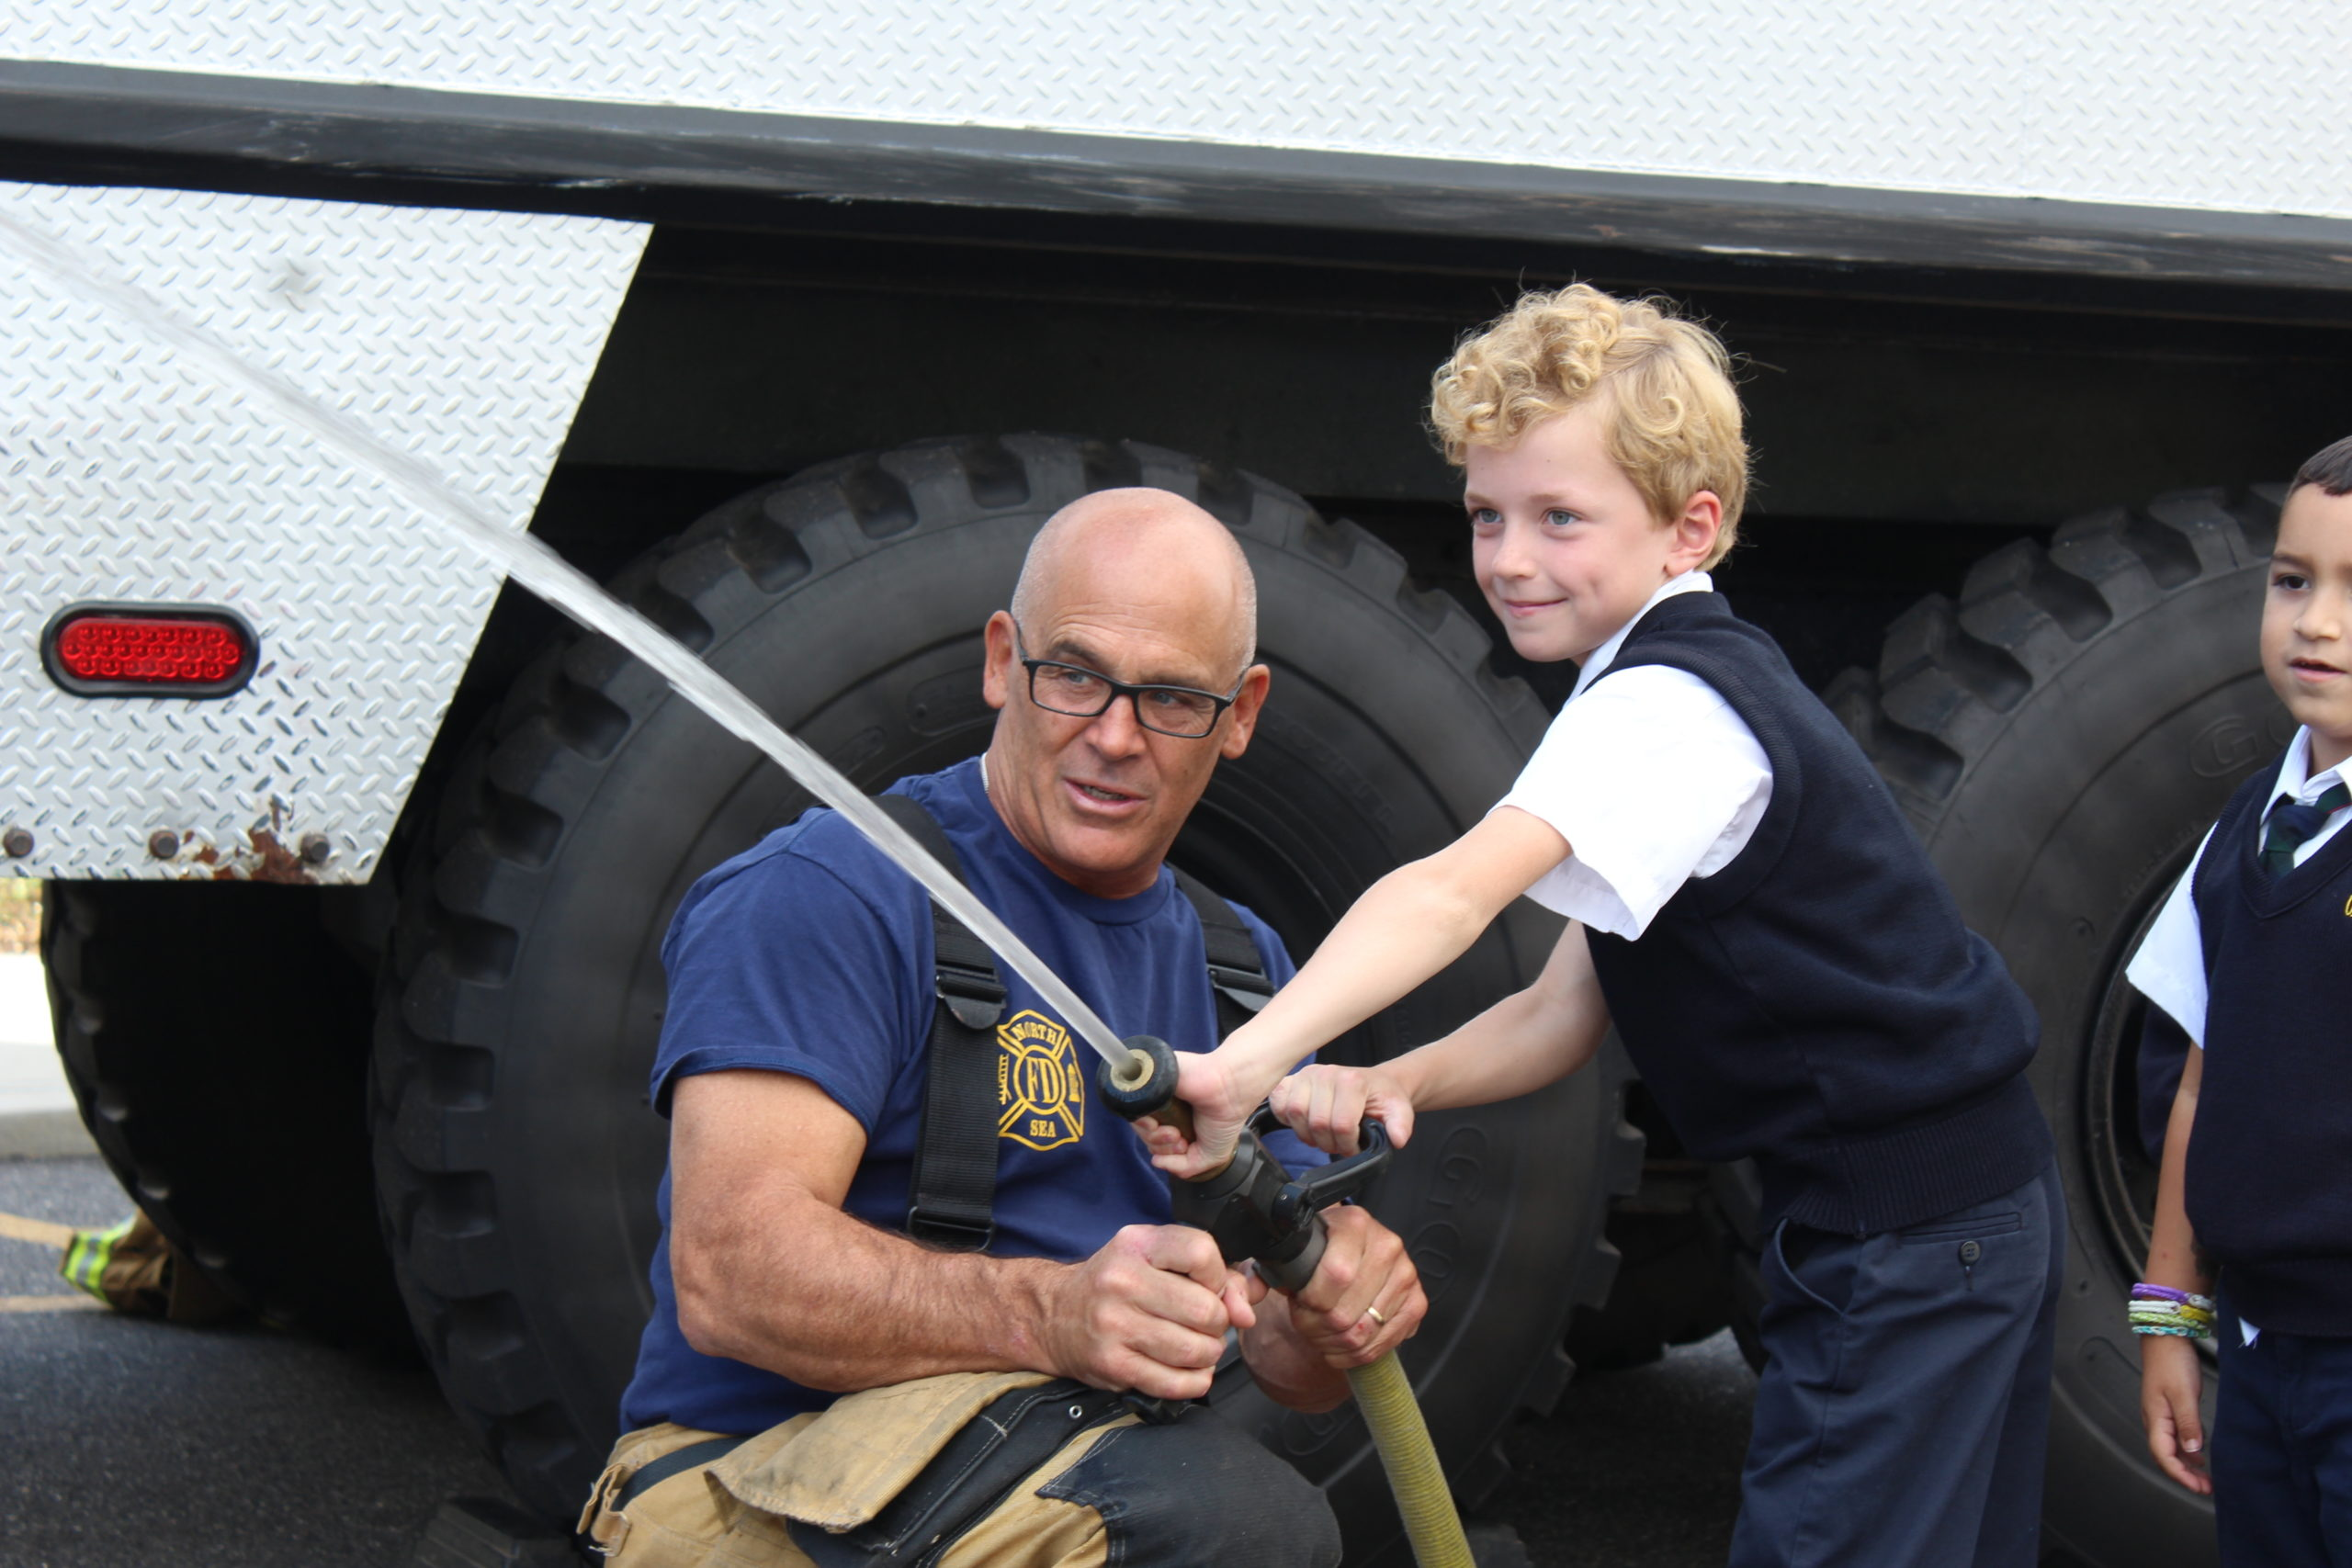 Our Lady of the Hamptons School second-grader Oliver Fulweiler gets instruction on using the fire house from fireman Mark Hannan.